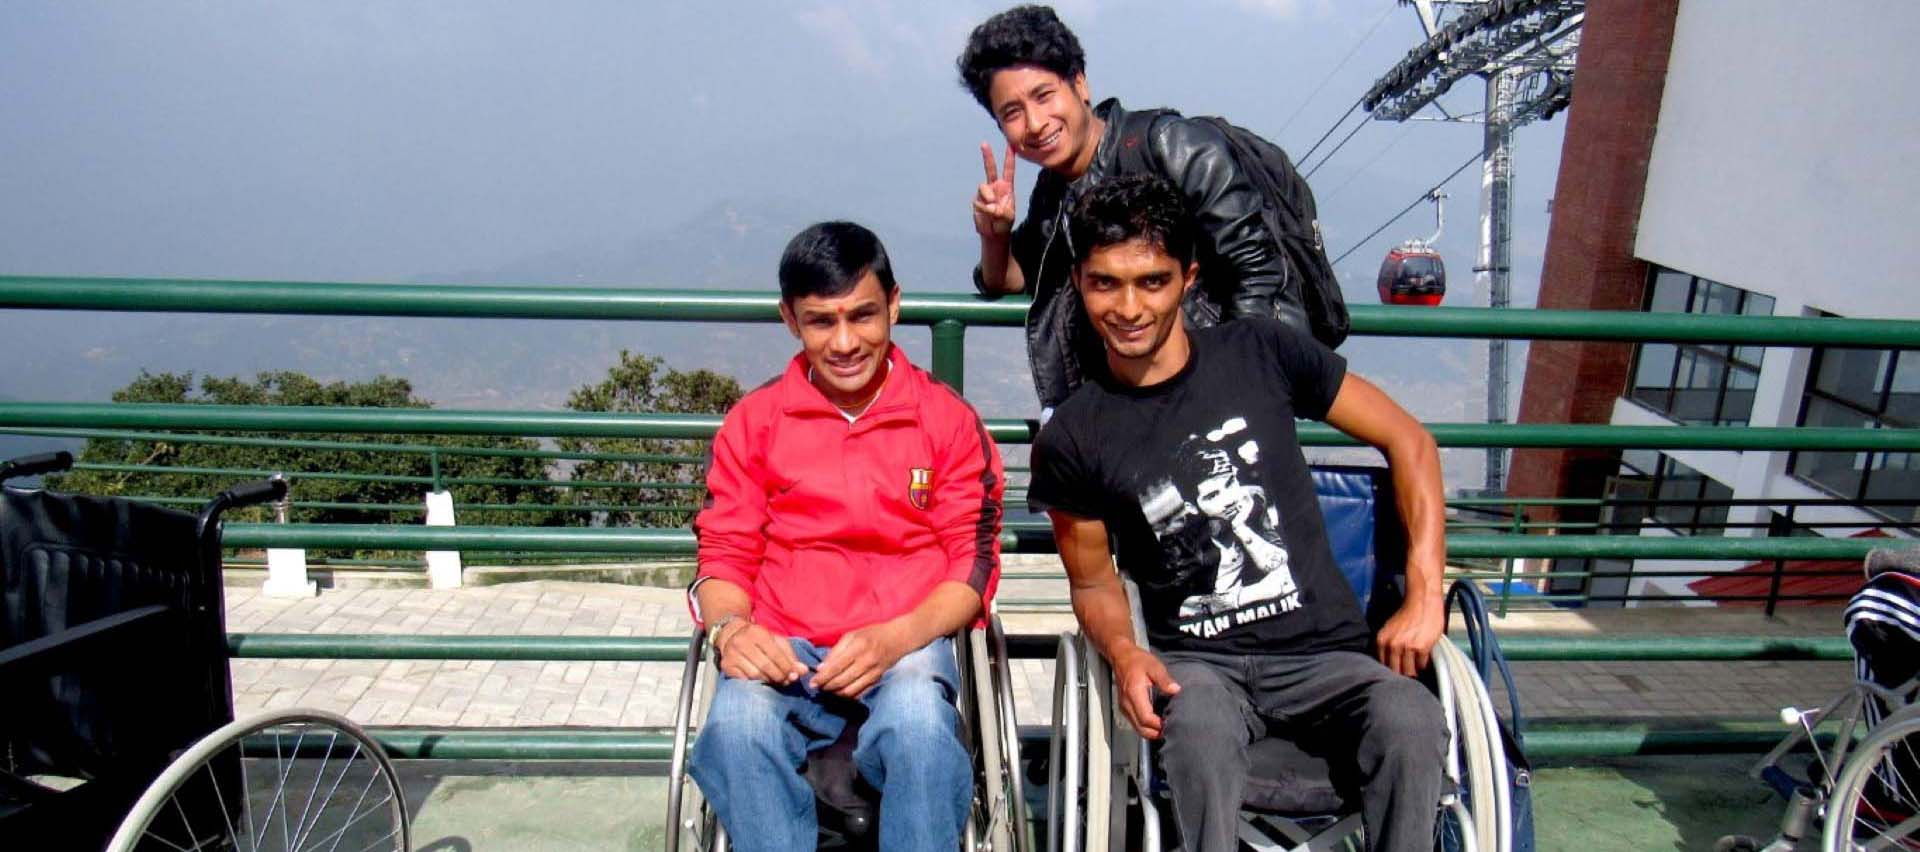 two persons with disabilities and a man standing behind him